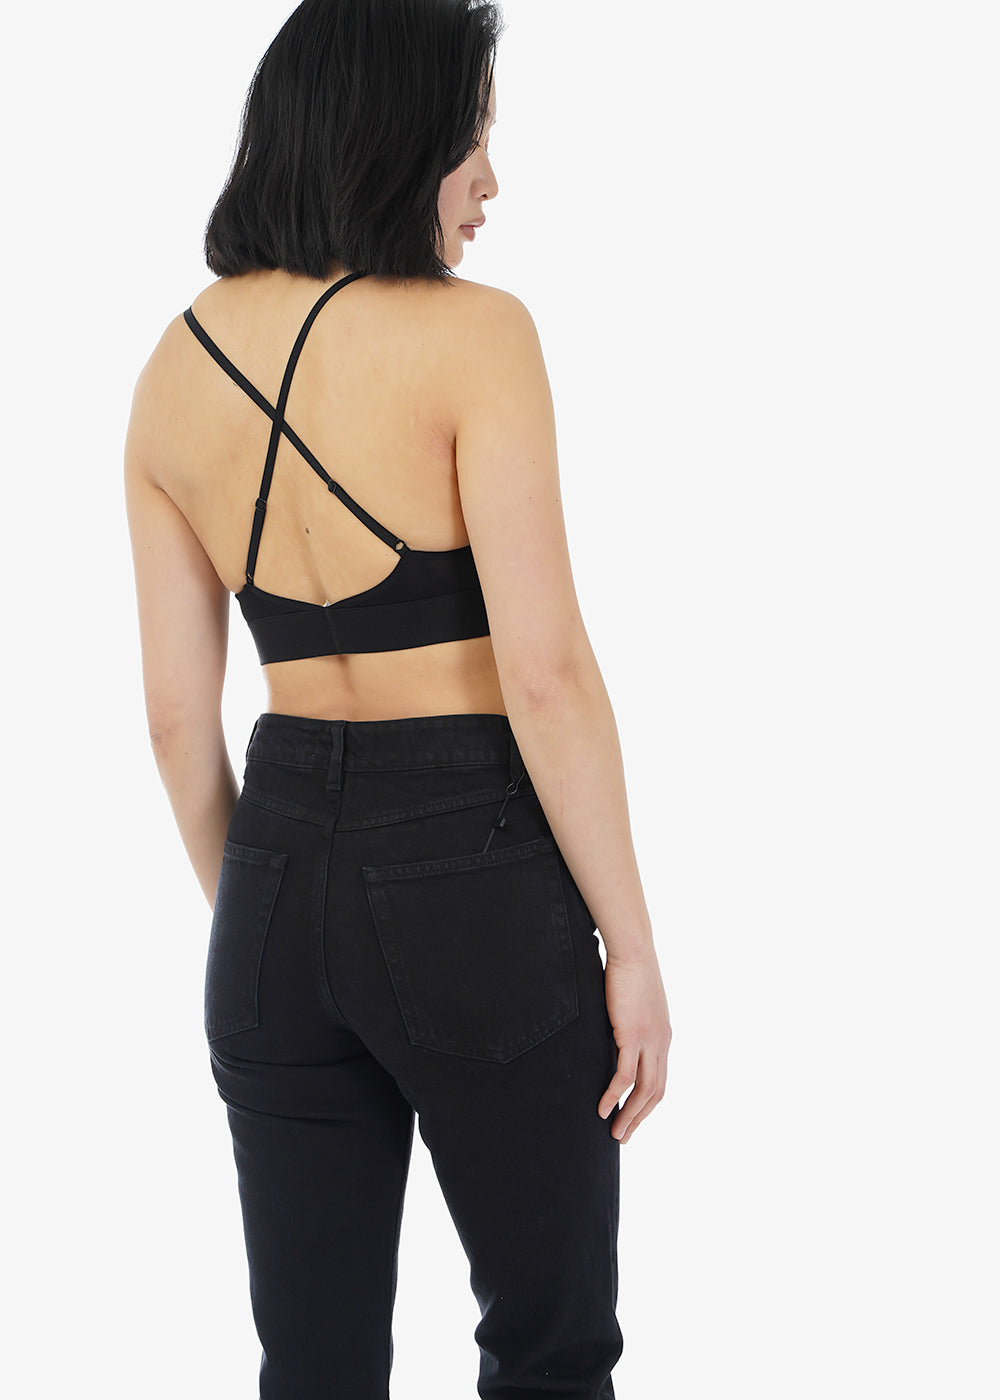 Baserange Black Lady Bra — Shop sustainable fashion and slow fashion at New Classics Studios